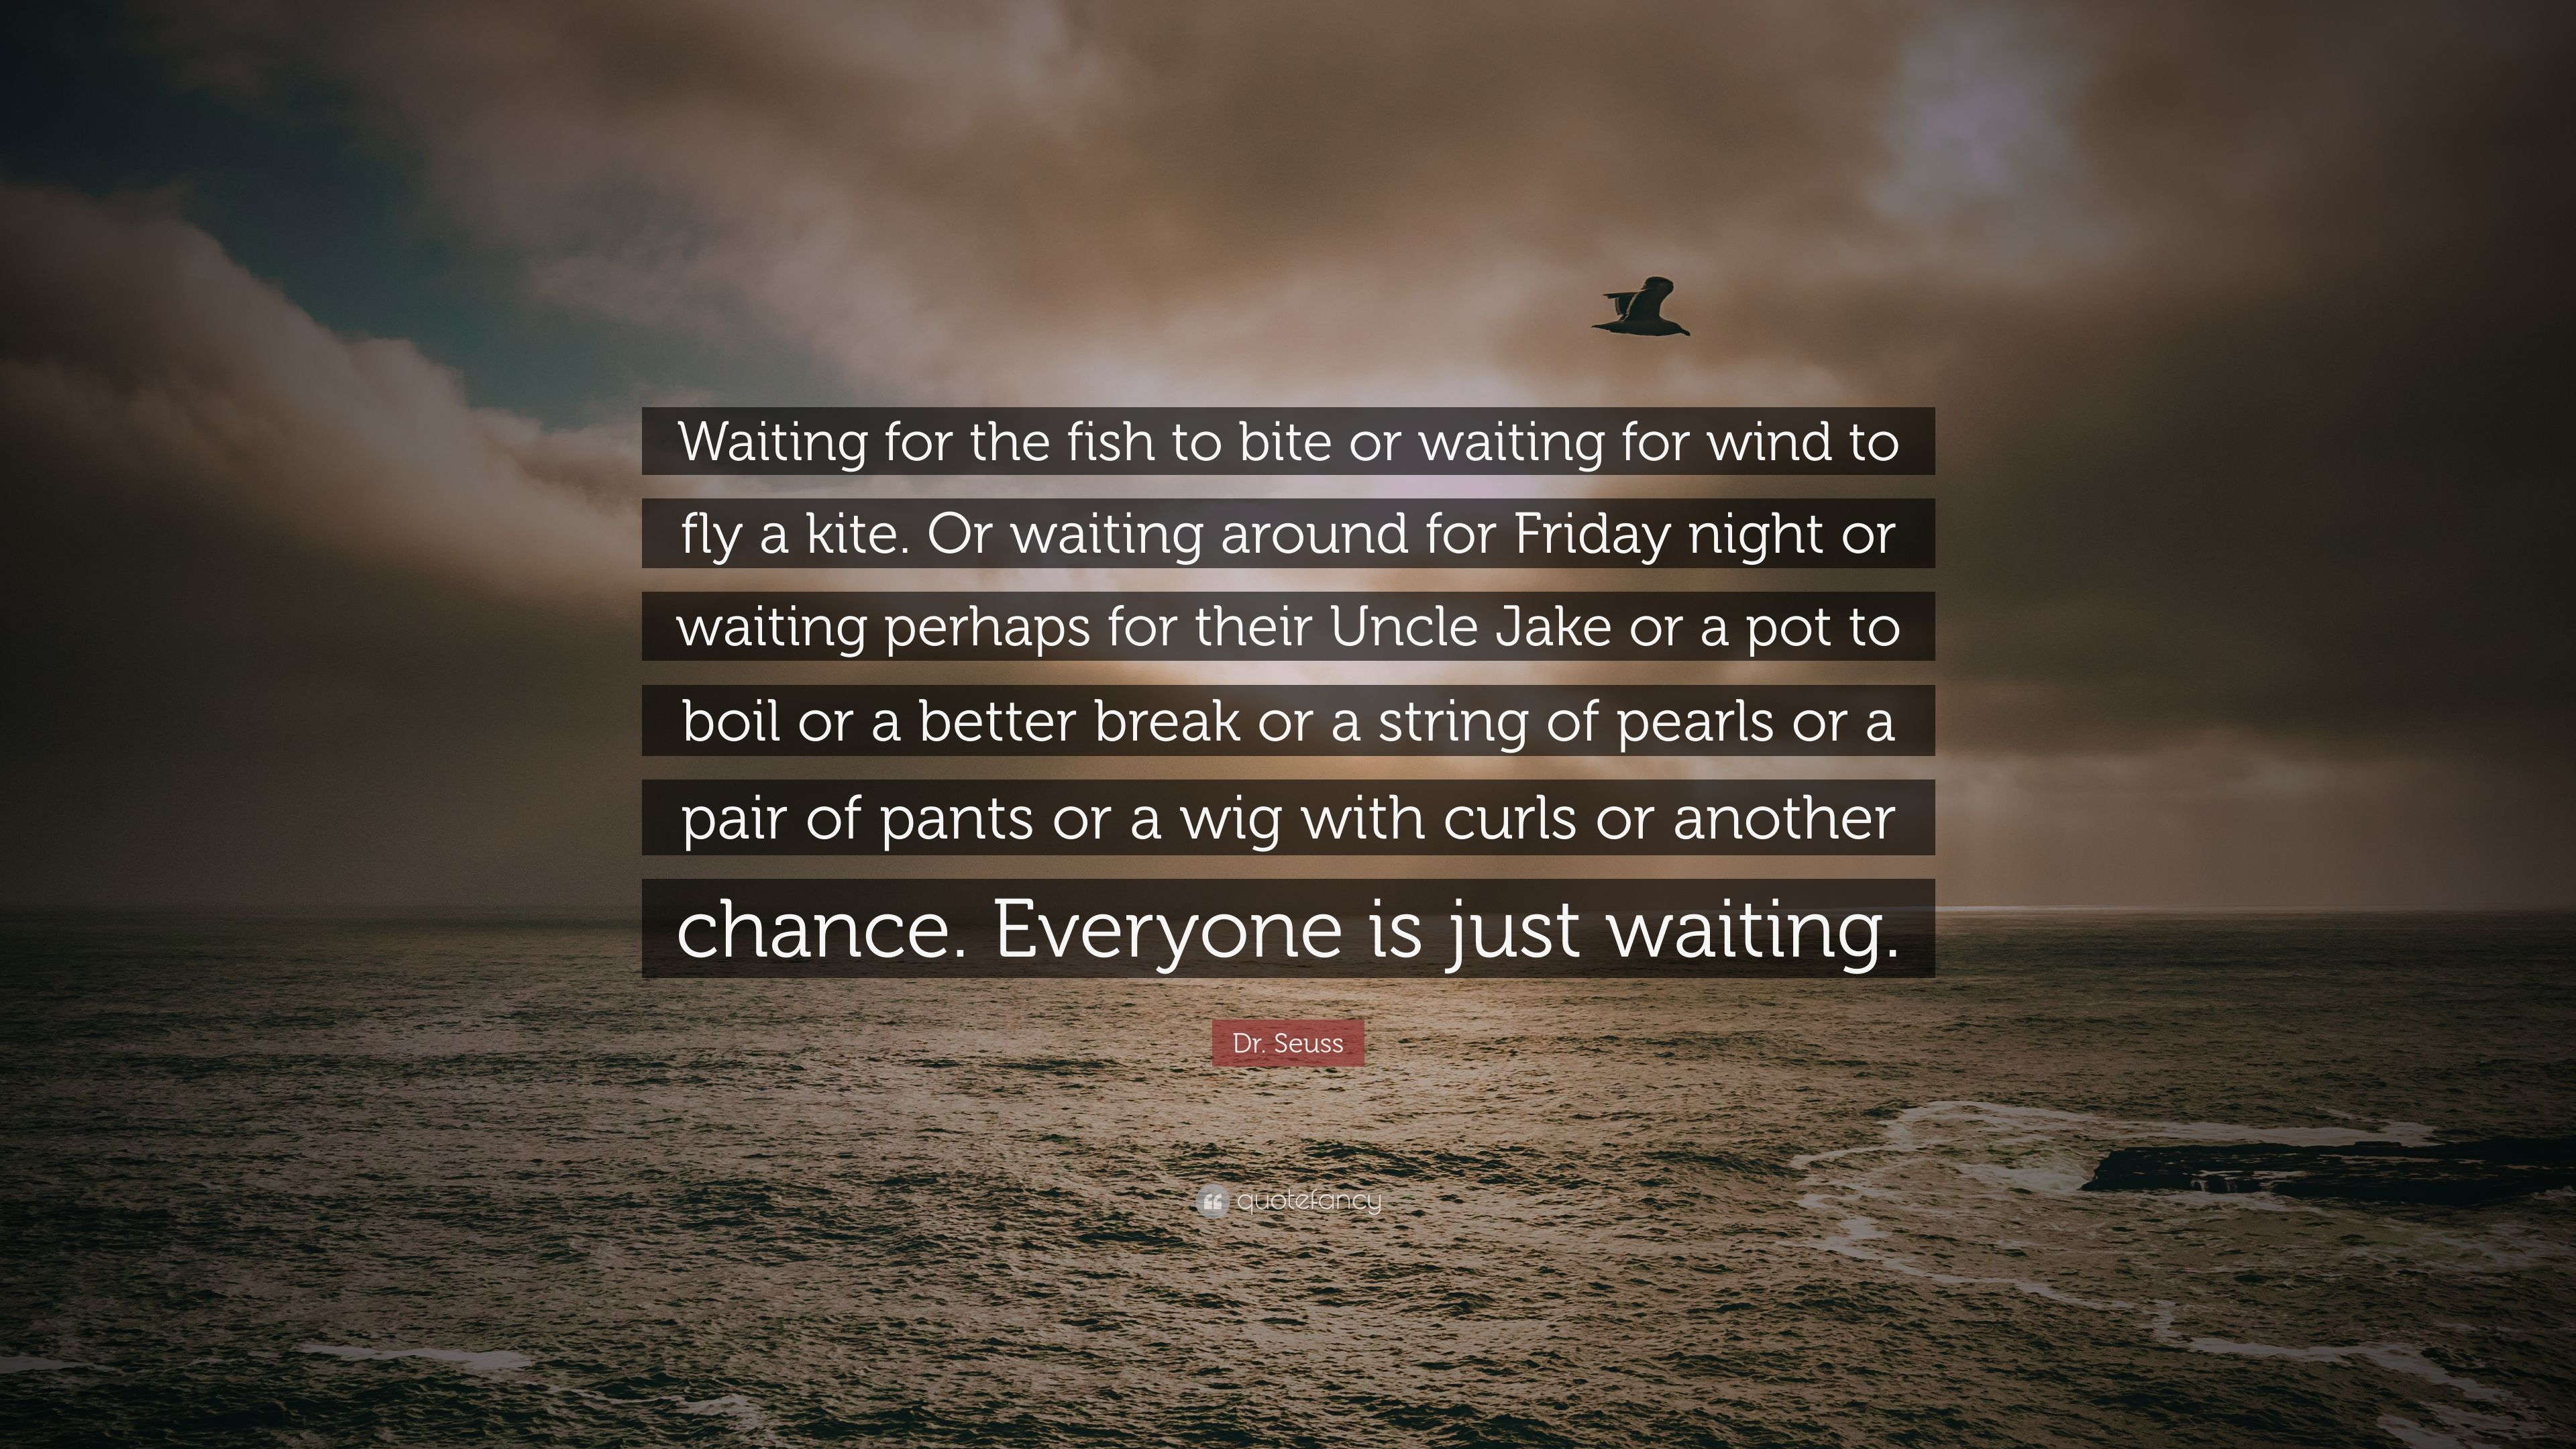 Dr seuss quote waiting for the fish to bite or waiting for Where are the fish biting near me